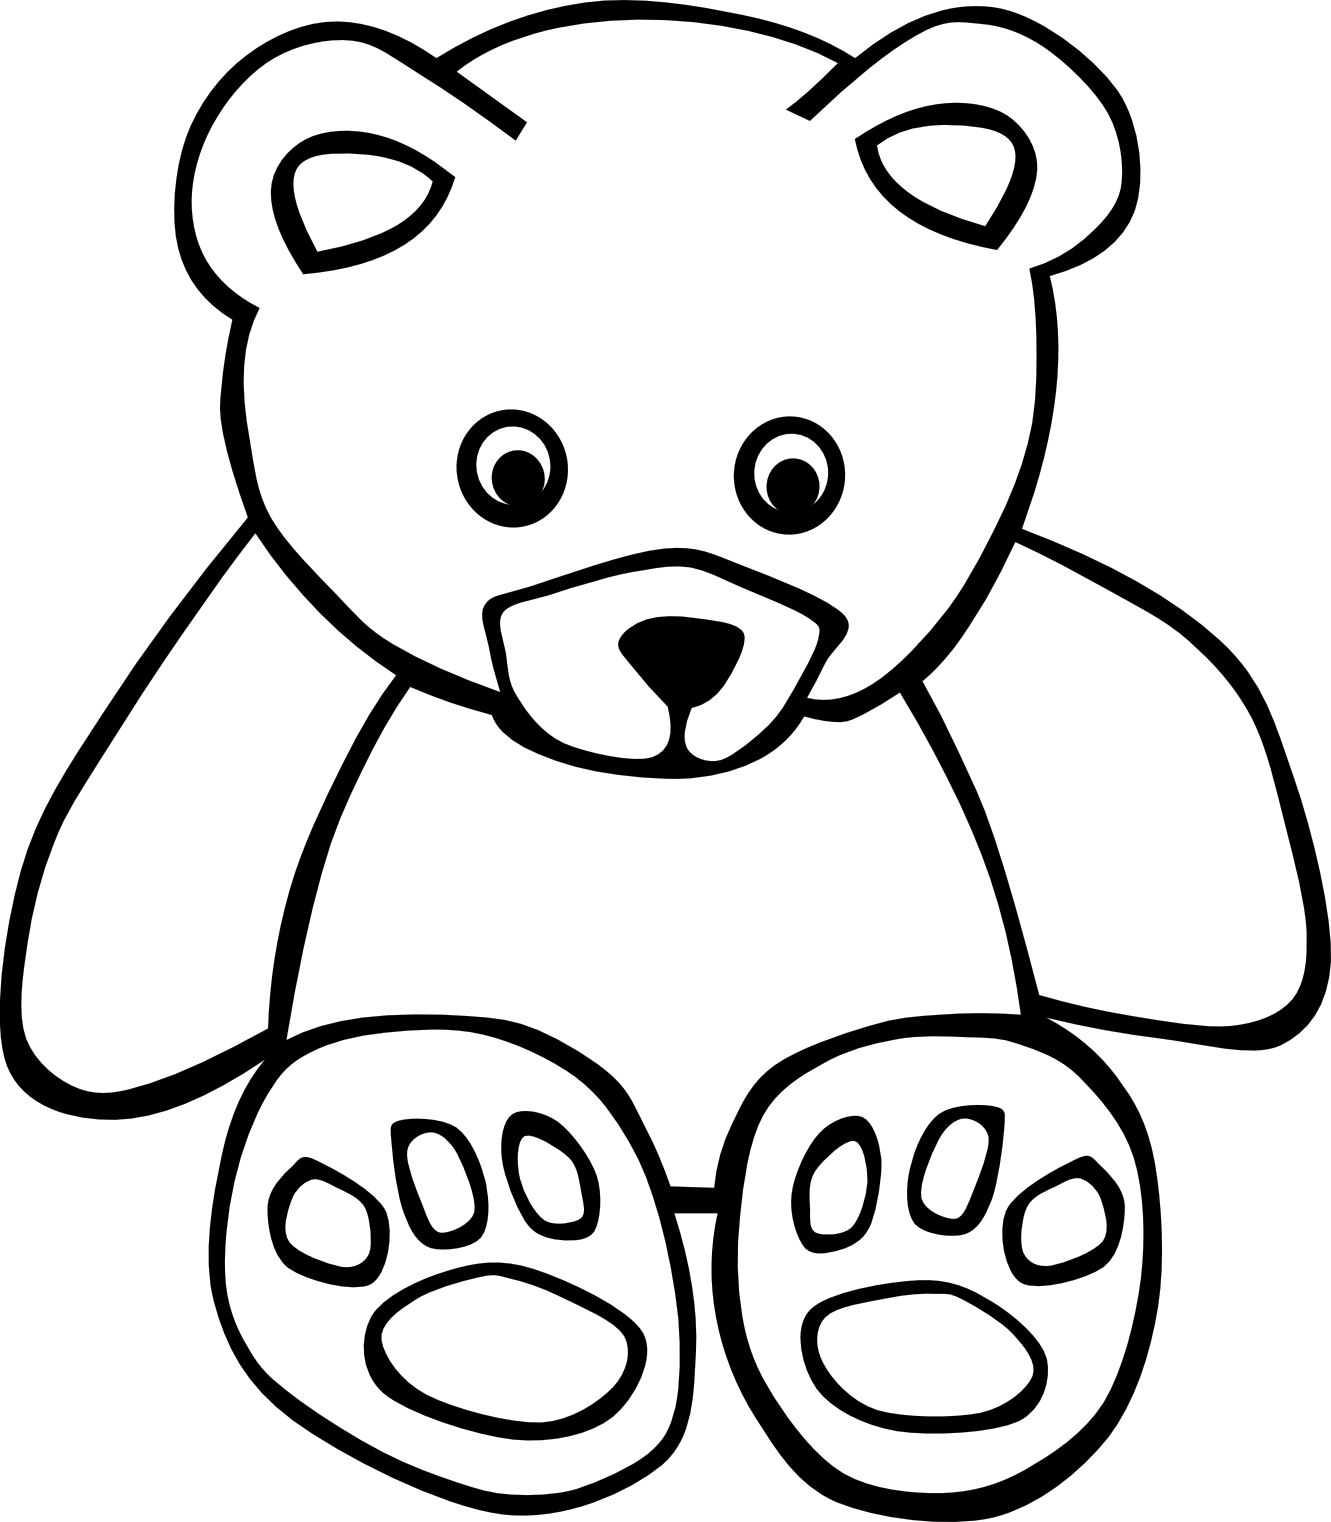 1331x1522 Animal Black And White Clipart